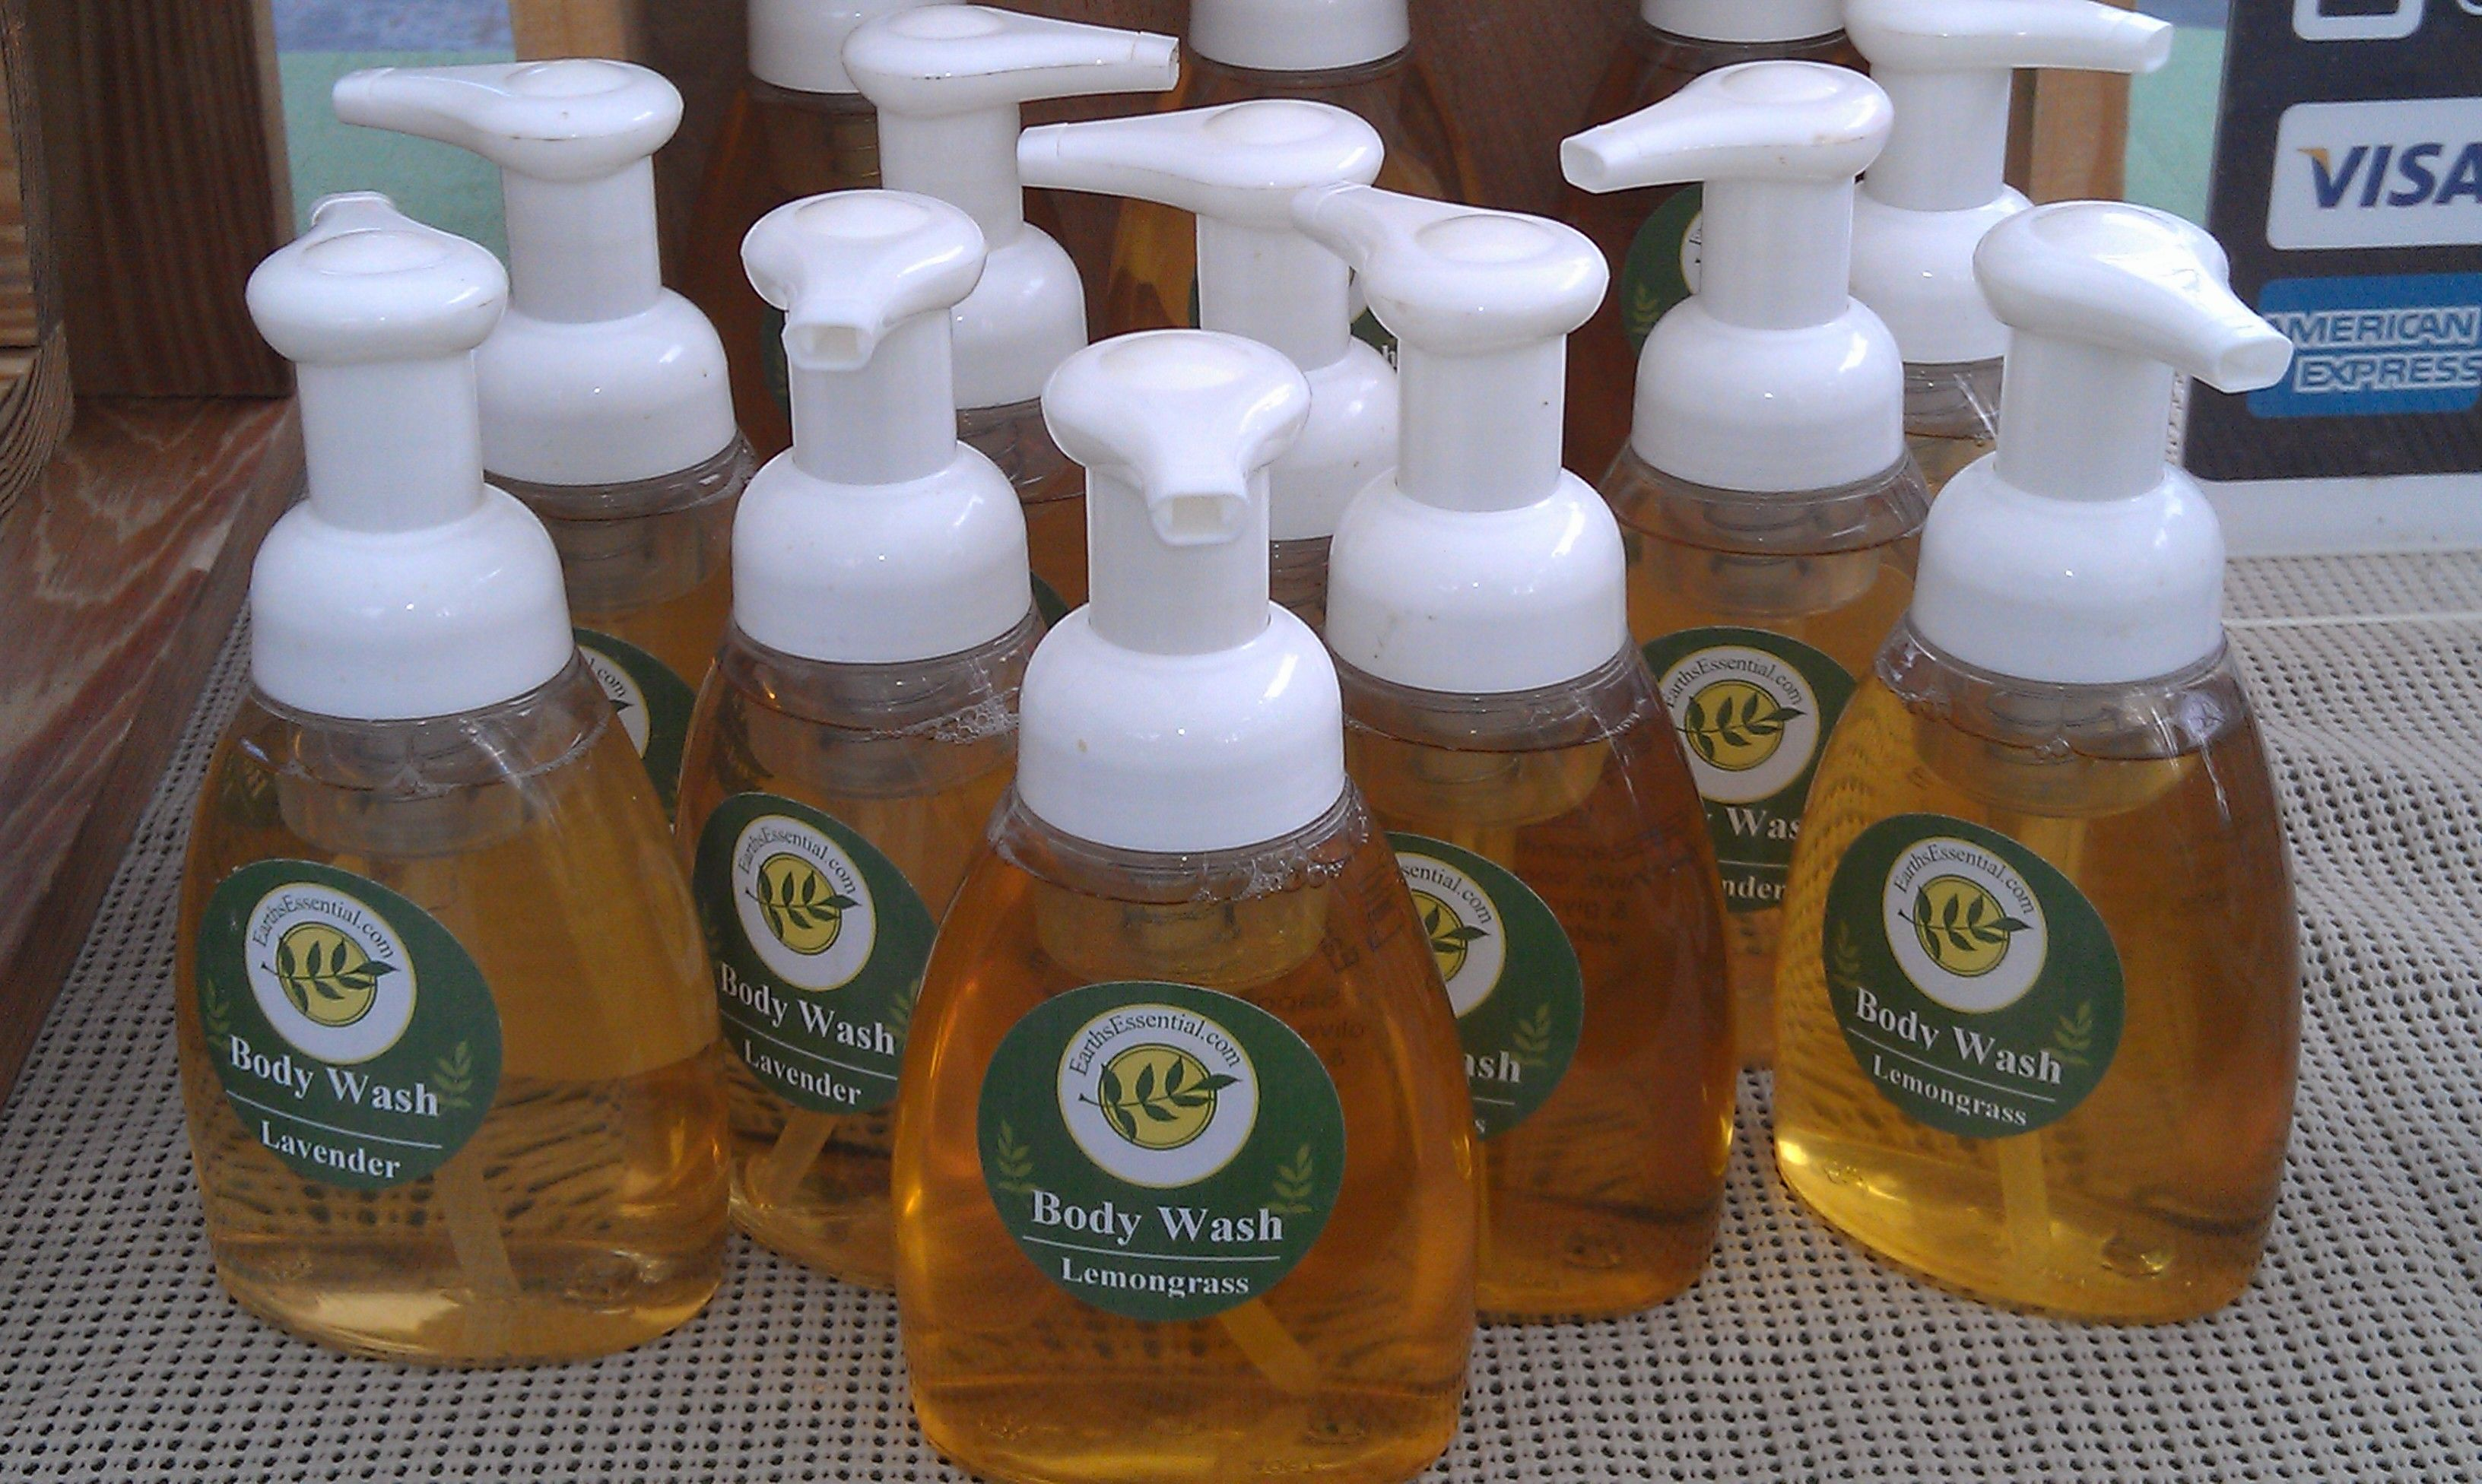 Natural body wash in foaming pump bottles. Natural body